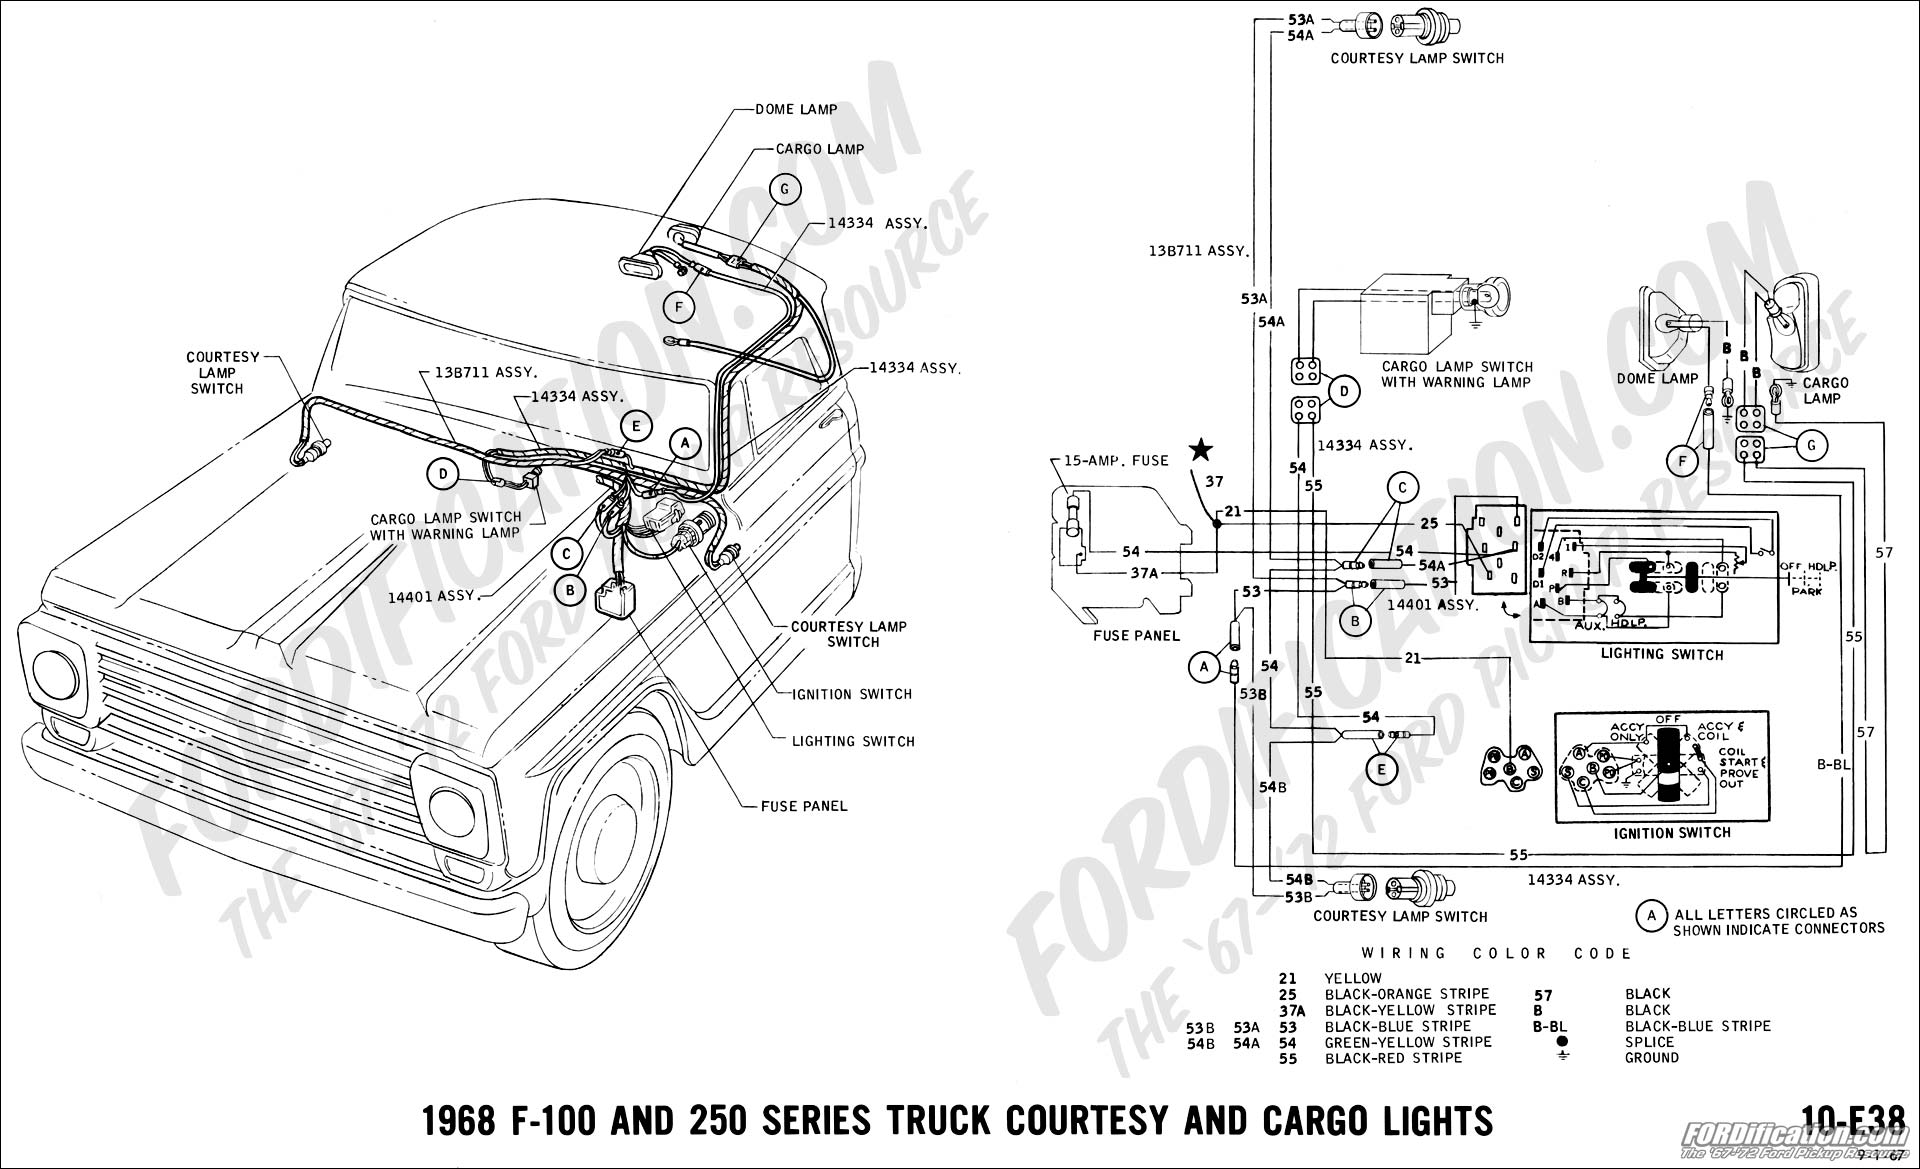 68 40 ford truck technical drawings and schematics section h wiring 1971 ford f250 wiring diagram at bayanpartner.co